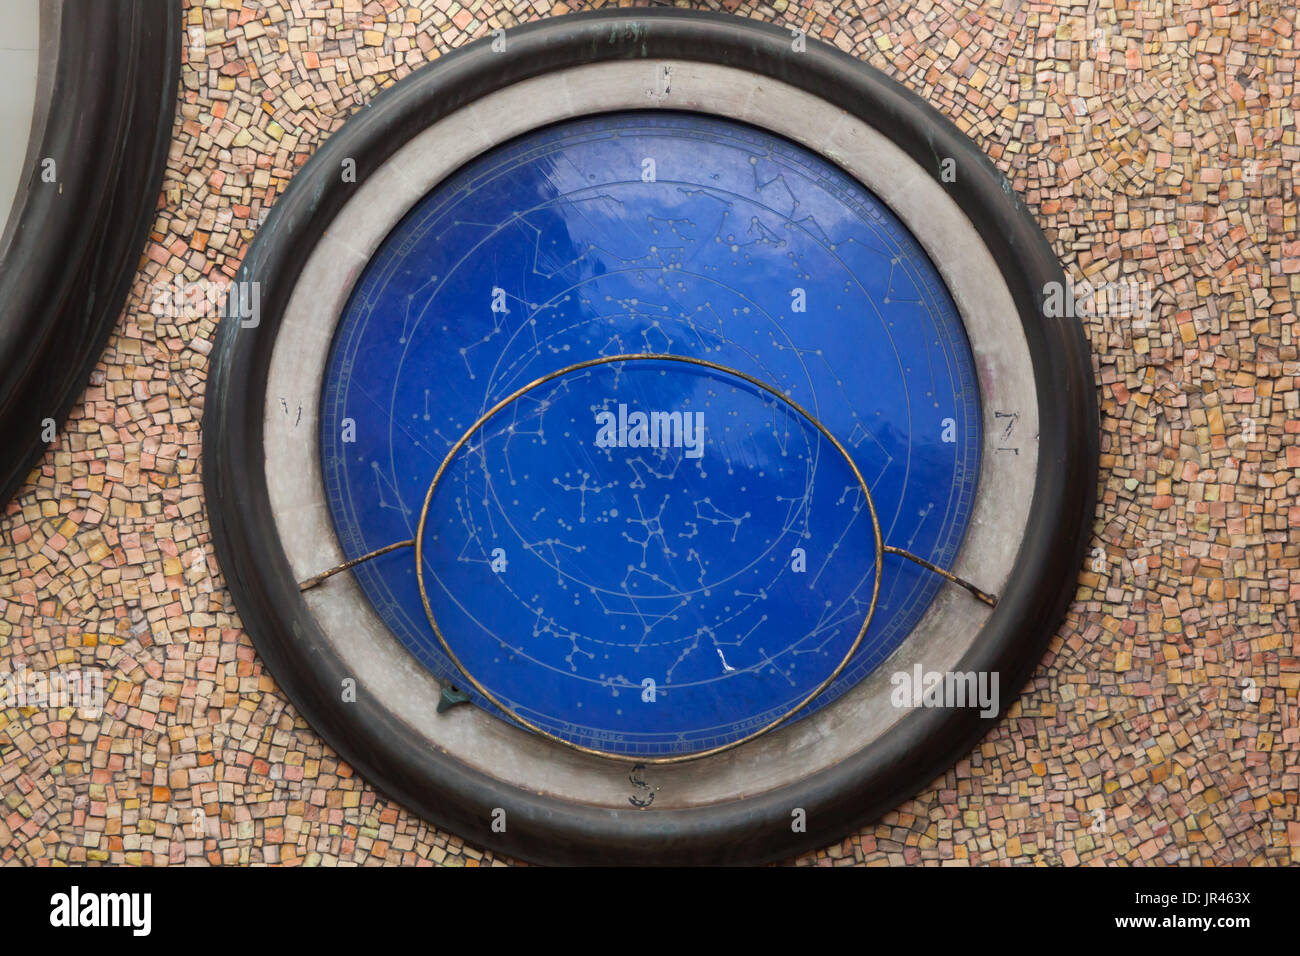 Star map depicted on the Astronomical clock in Olomouc, Czech Republic. The historical clock once placed outside the Olomouc City Hall was seriously damaged during World War II and rebuild in socialist realism style by Czech artist Karel Svolinský in the 1950s. - Stock Image